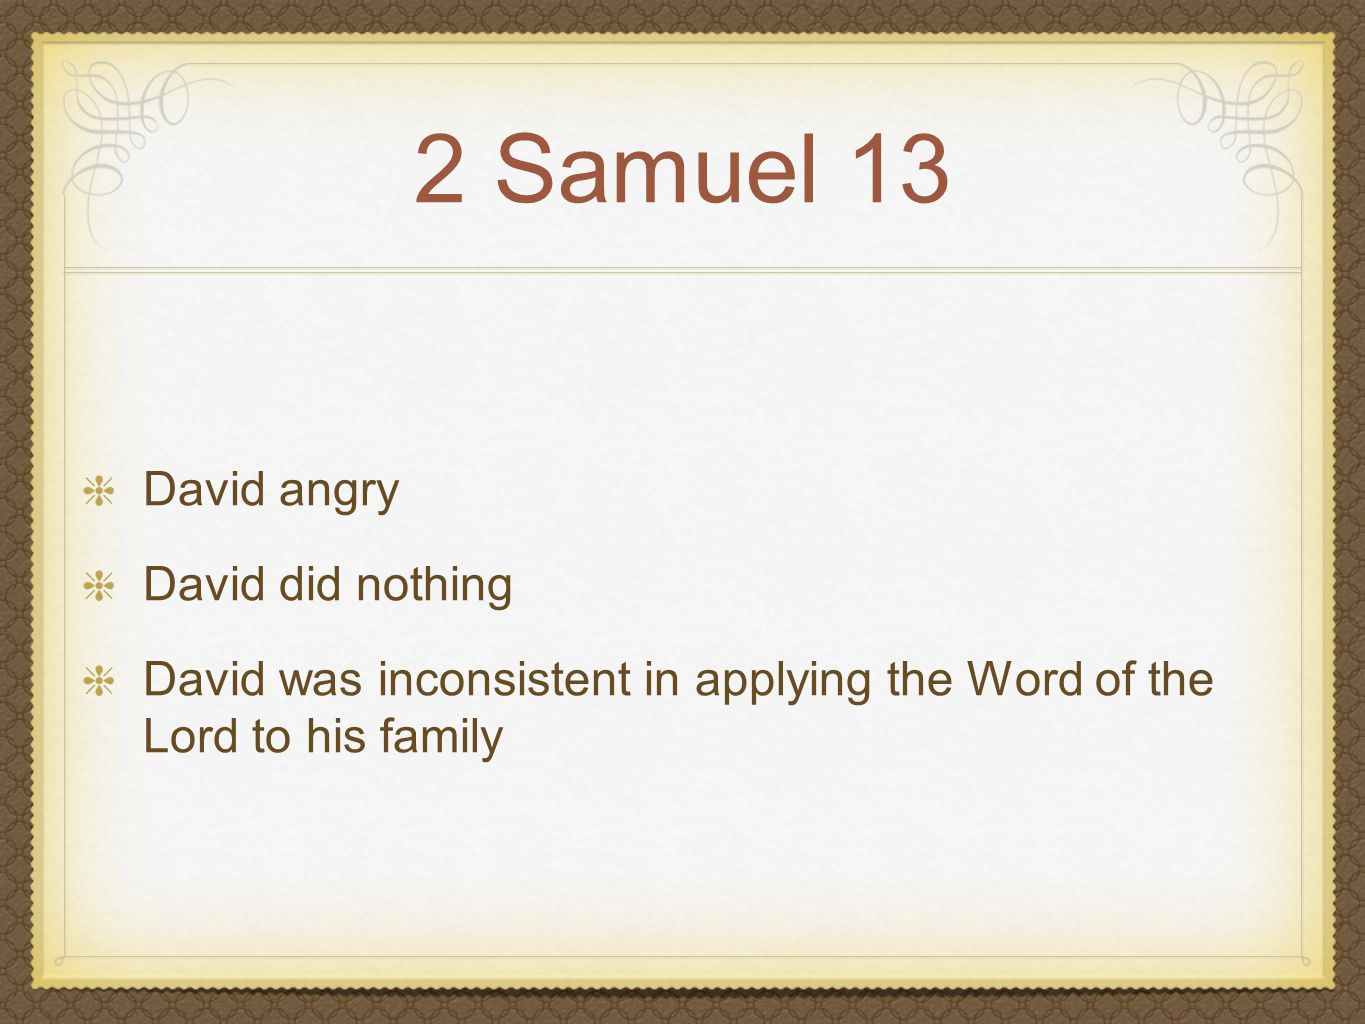 2 Samuel 13 David angry David did nothing David was inconsistent in applying the Word of the Lord to his family Absalom laid in wait...took Tamar in...he became ruled by his emotions...2 years later killed Amnon Absalom fled The sword would not pass from Davids house...first- born dead, daughter desolate, third-born estranged